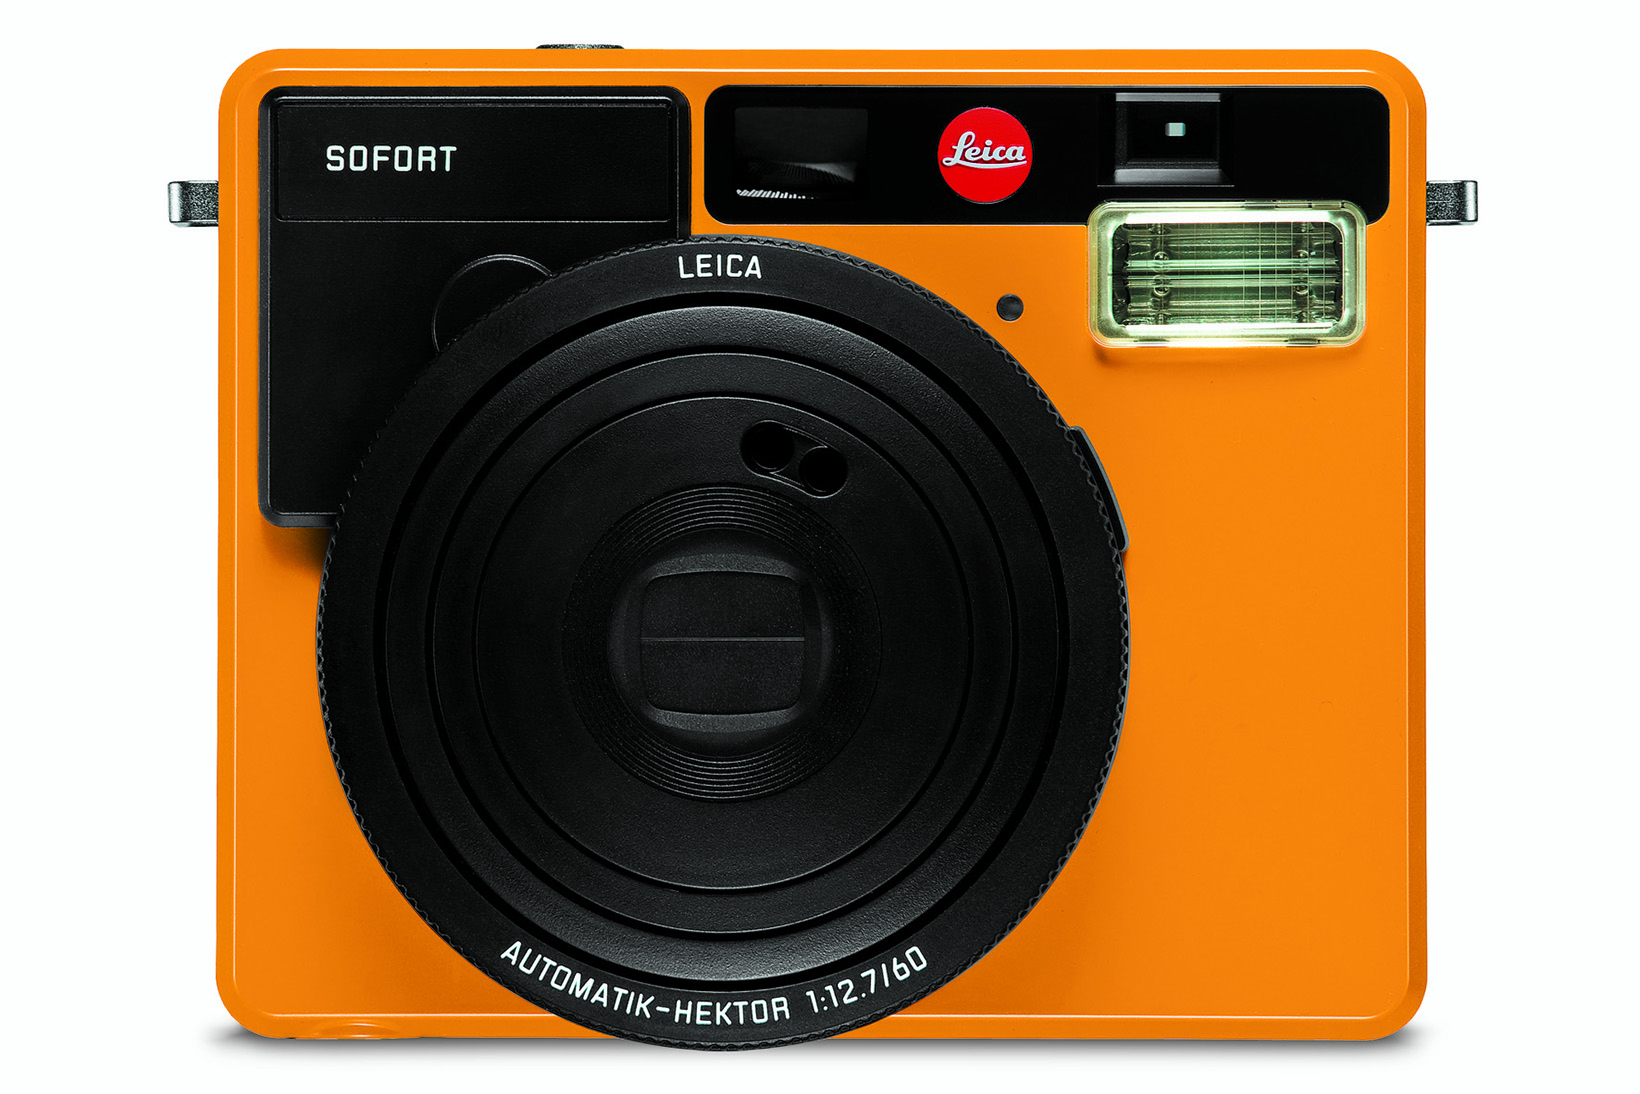 Best Leica Camera For Travel